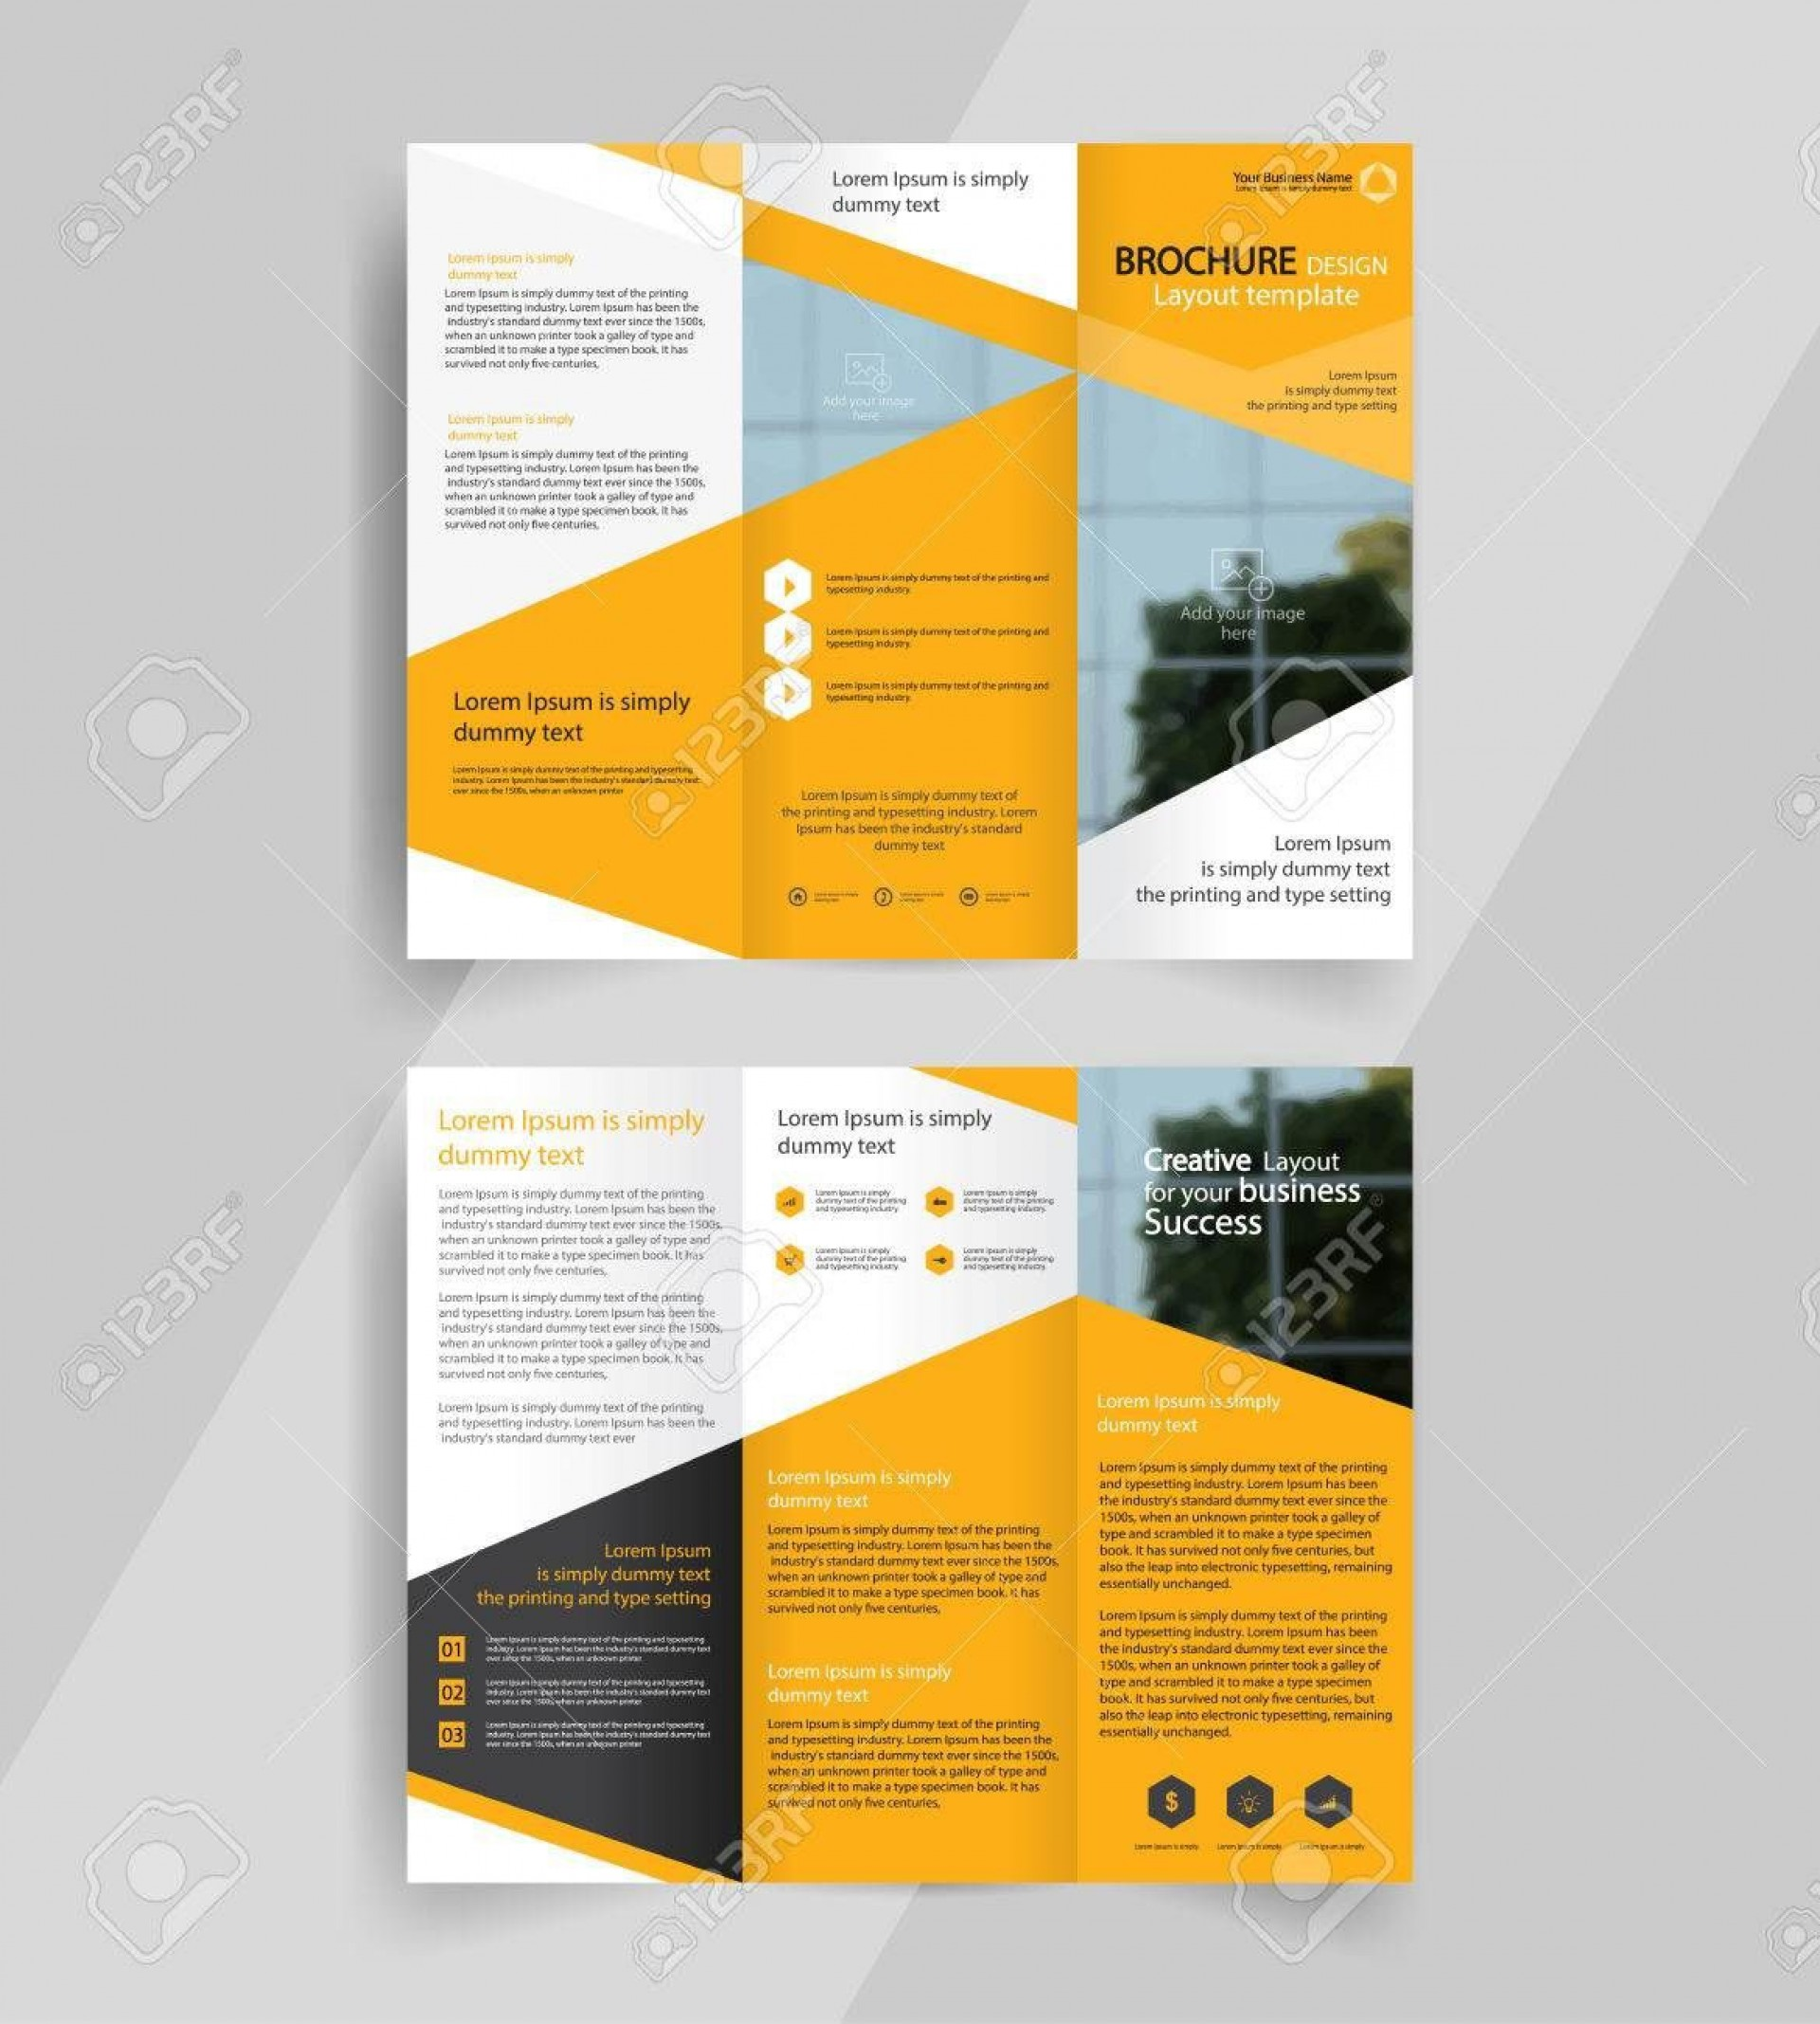 000 Imposing 3 Fold Brochure Template Concept  Templates For Free1920